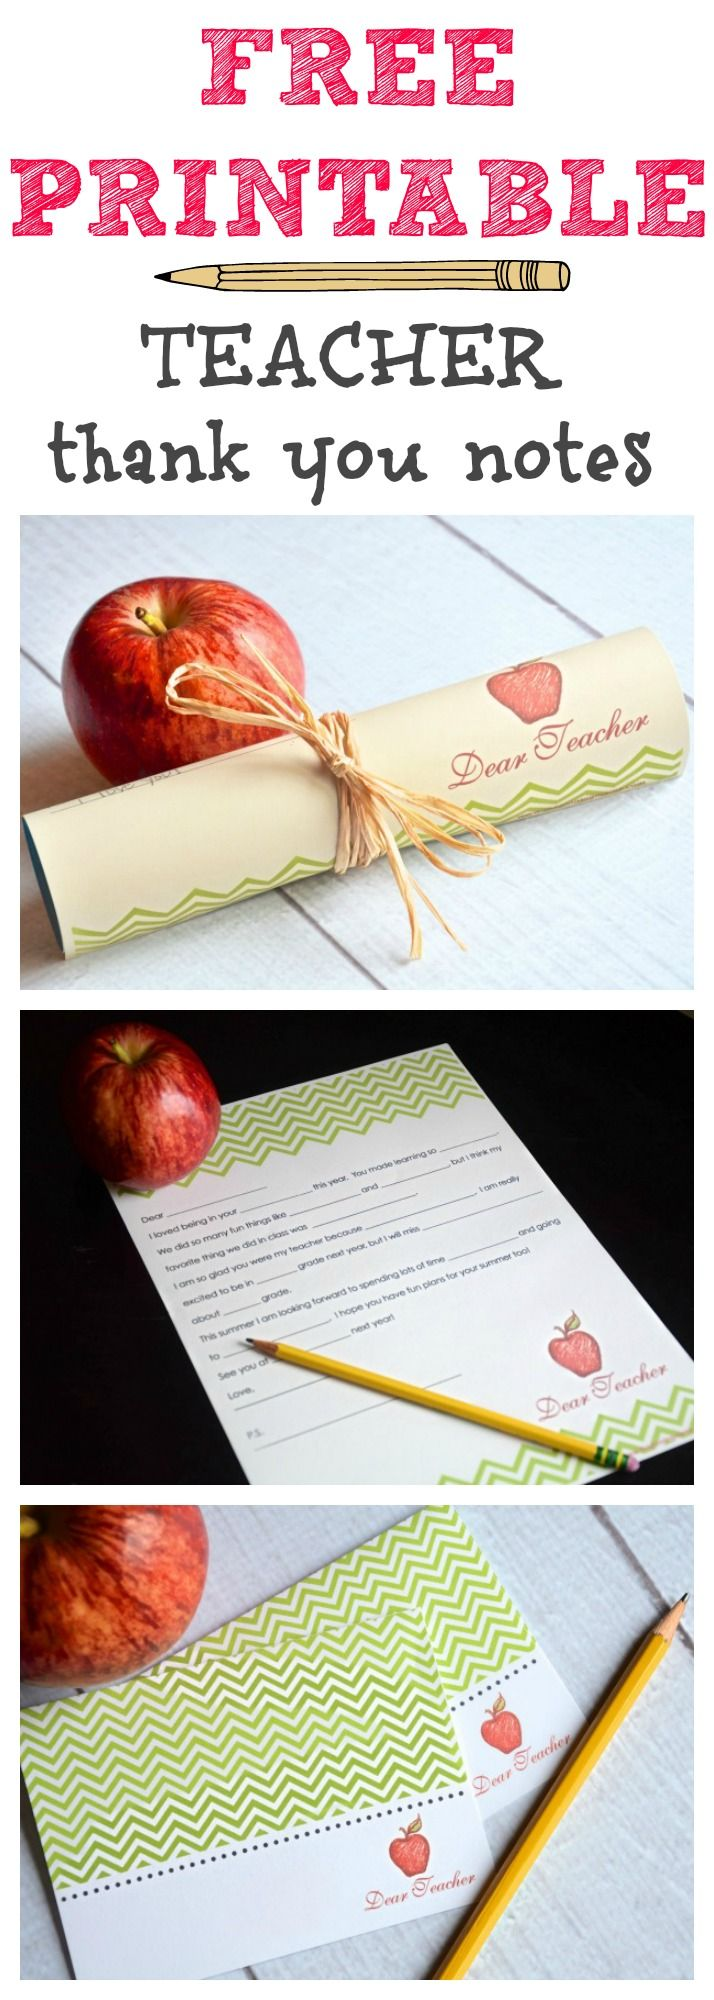 16 awesome pics of thank you letter for teacher from student sample